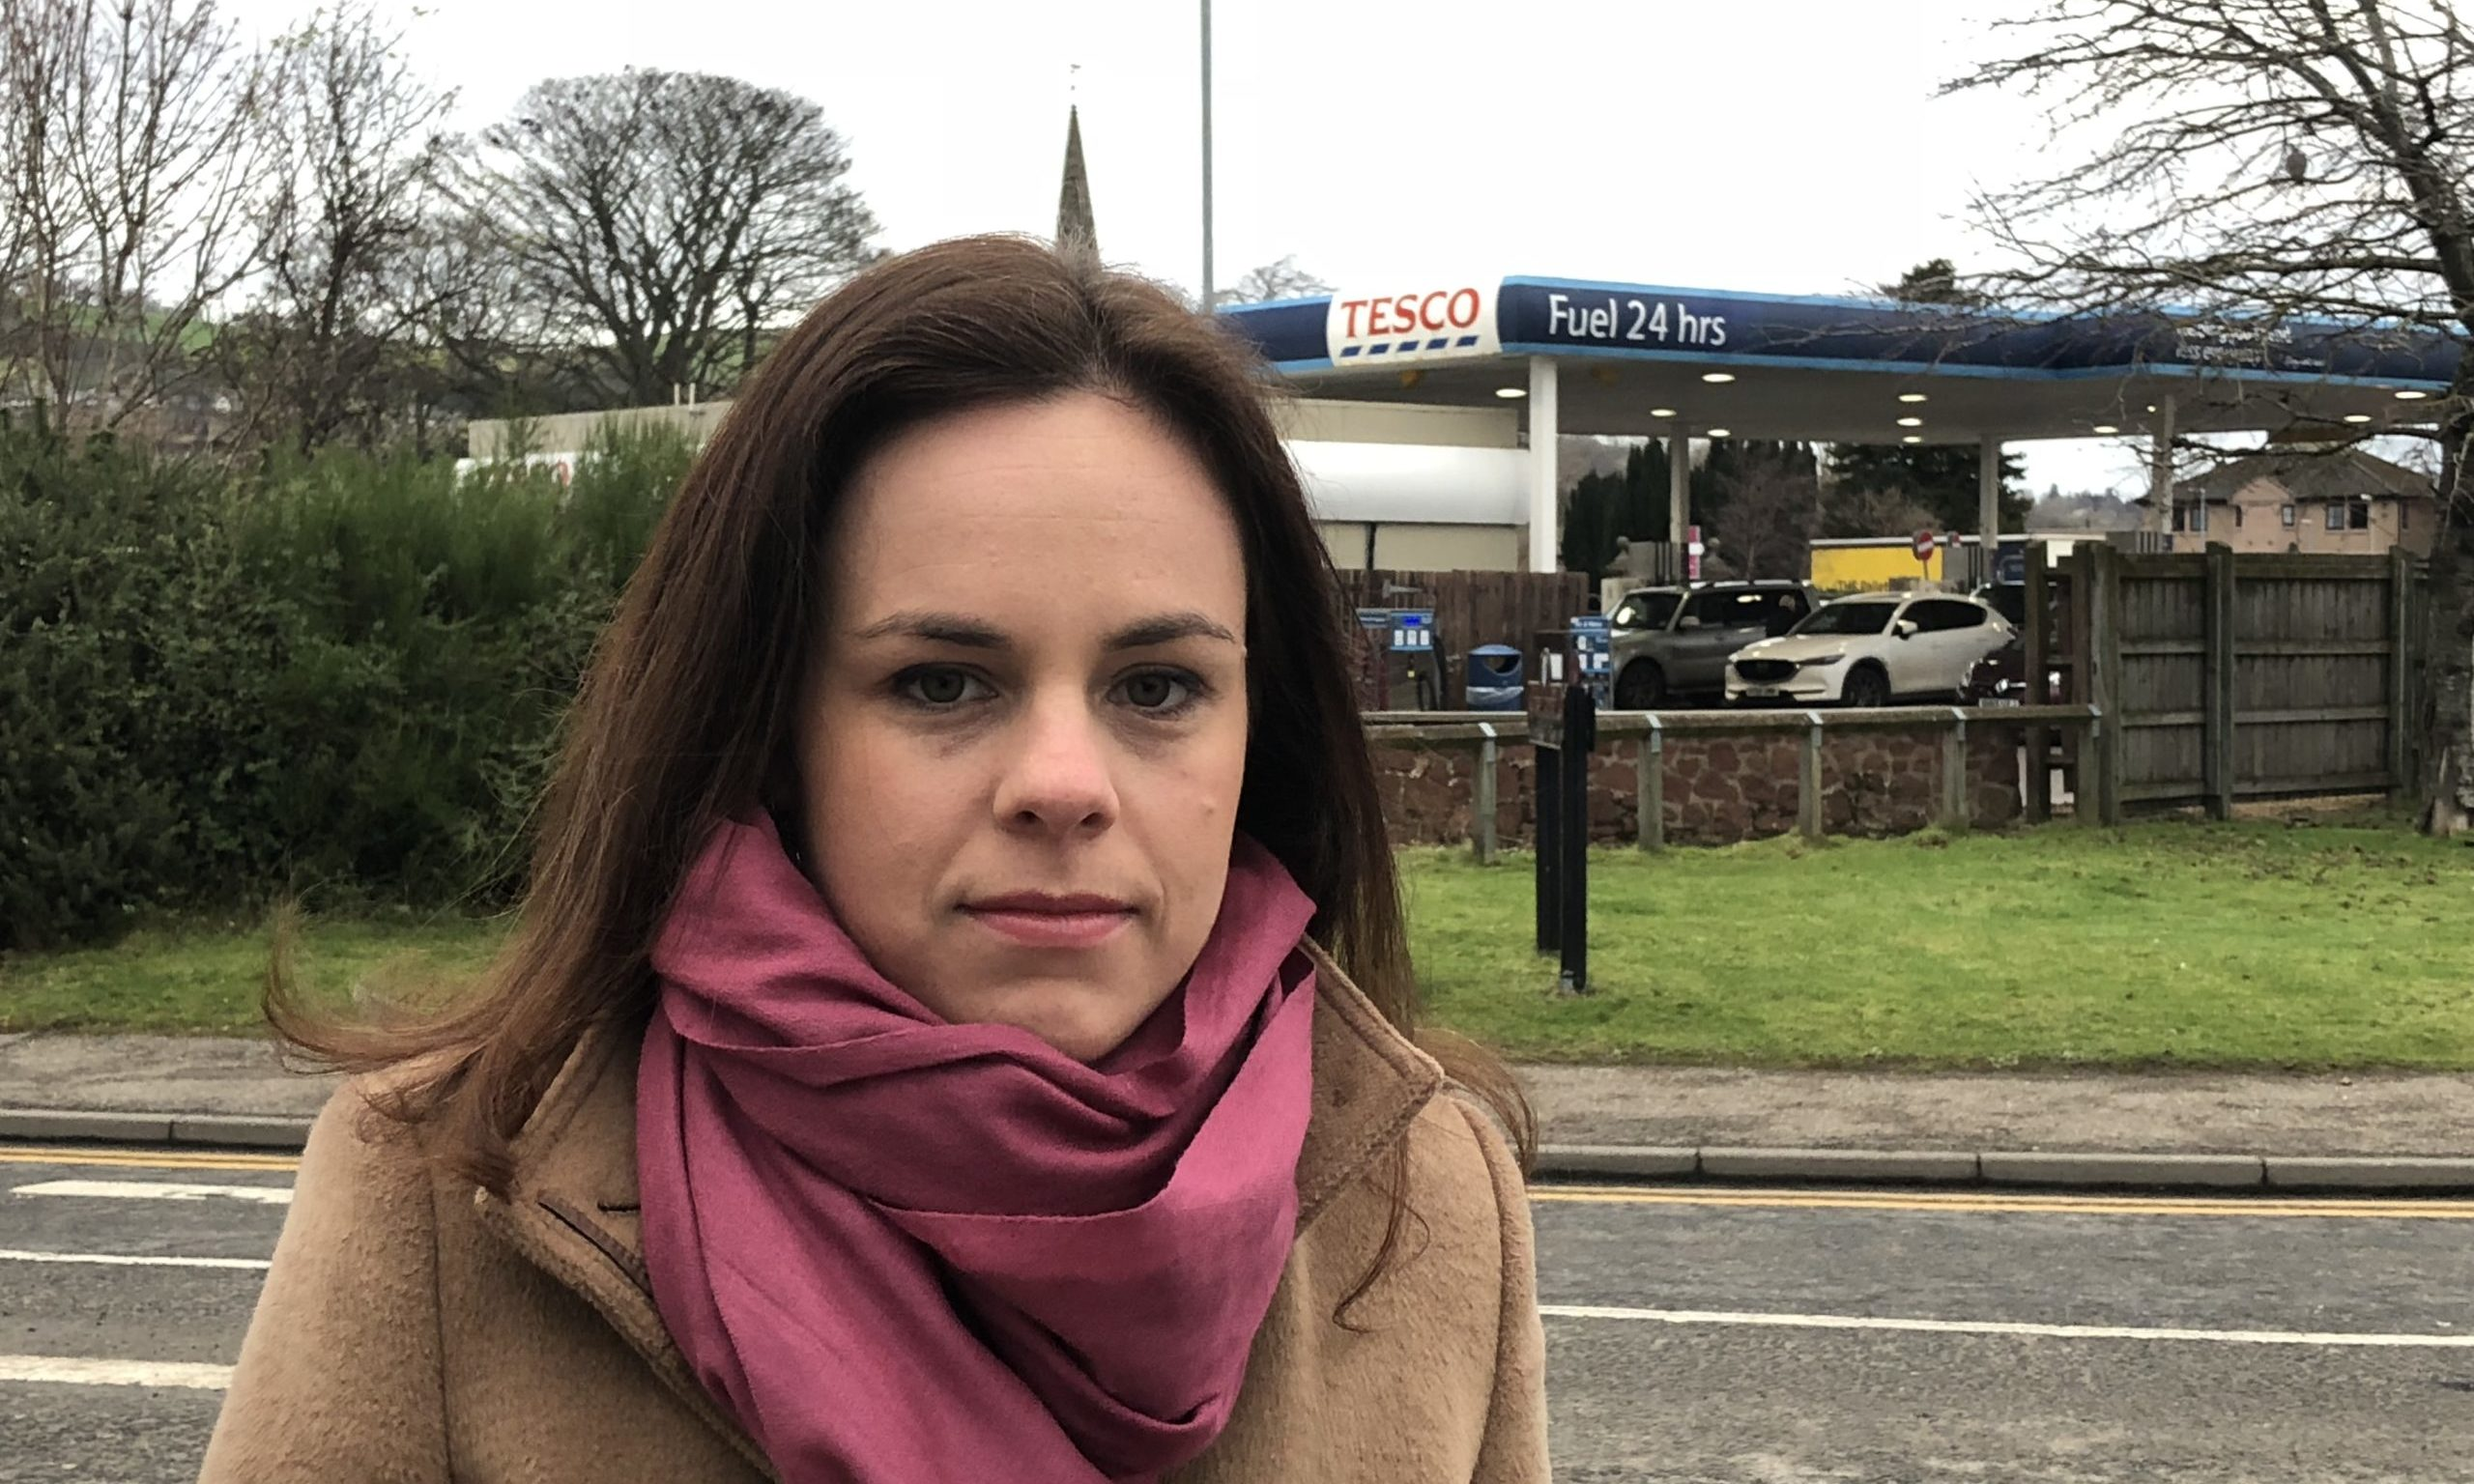 Kate Forbes has secured a meeting with Tesco to discuss reinstating the 24-hour fuel provision